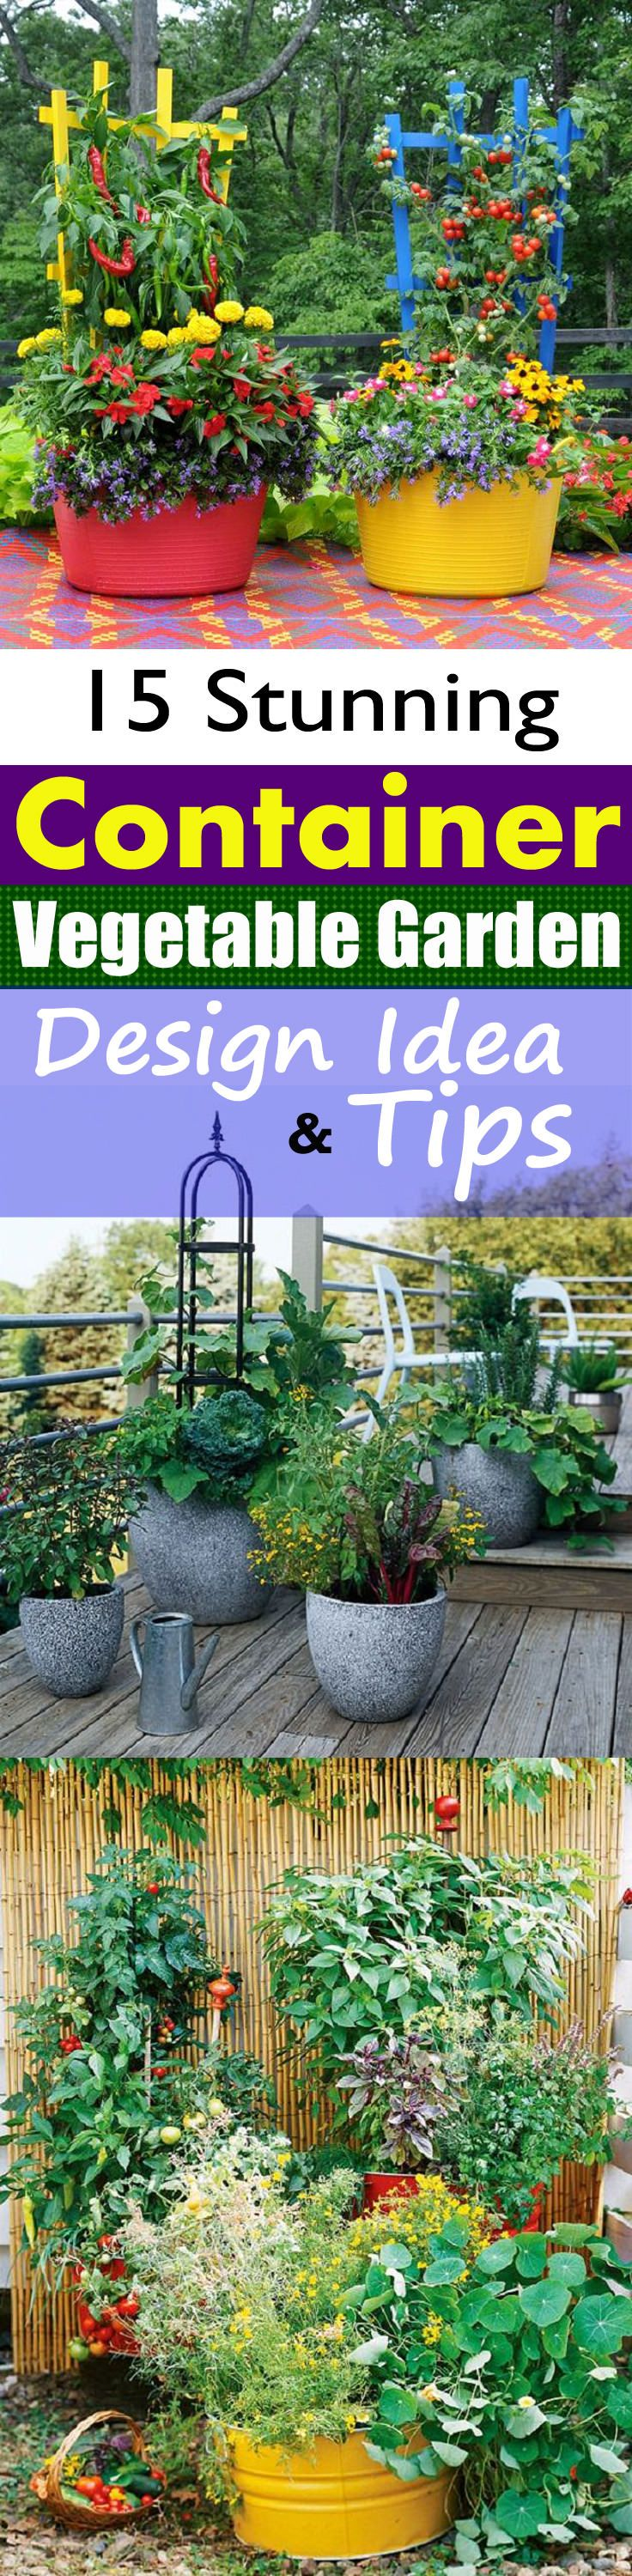 Container Vegetable Garden Ideas container vegetable garden ideas the gardening container vegetable 15 Stunning Container Vegetable Garden Design Ideas Tips